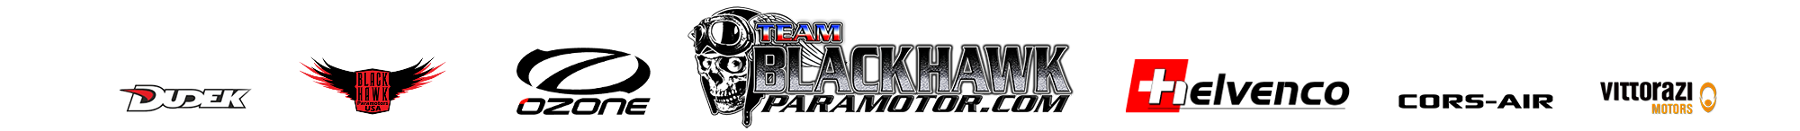 BlackHawk Paramotors USA Logo